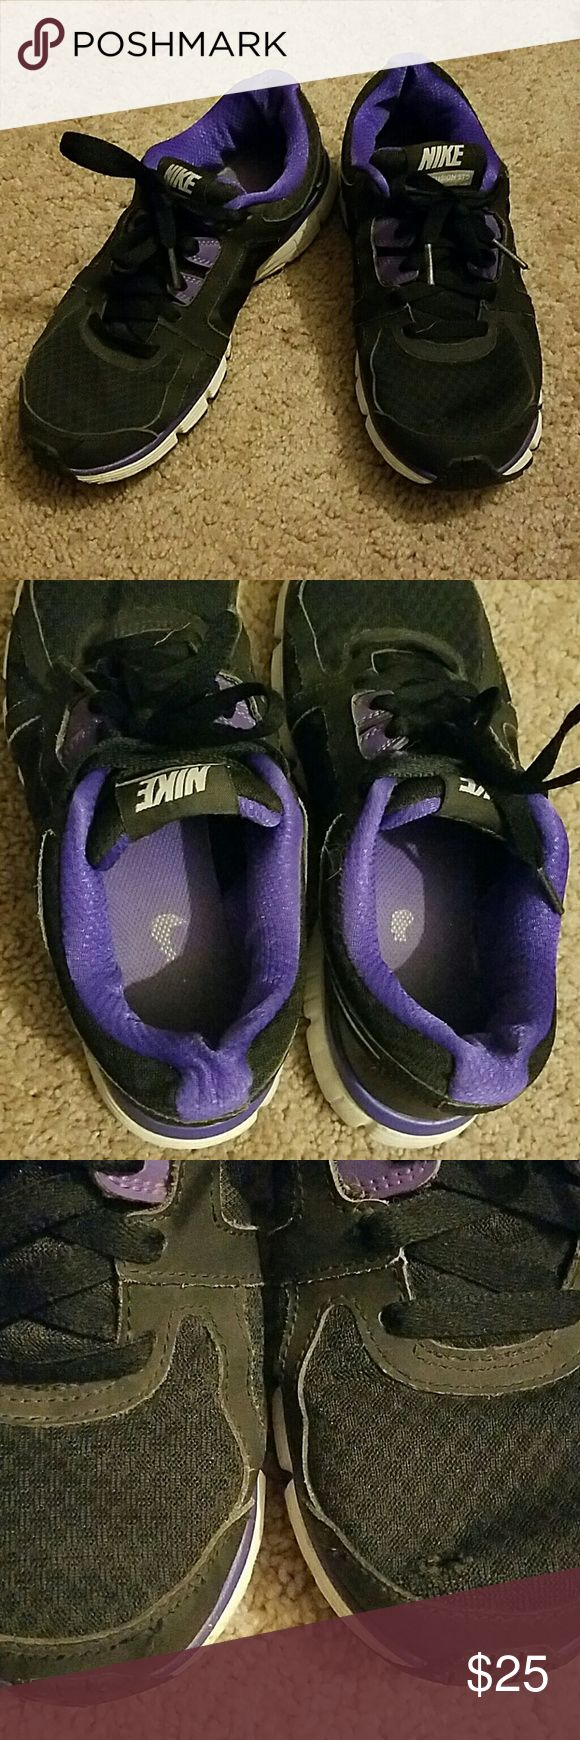 Nike Dual Fusion Sneakers Nike Dual Fusion Sneakers size 7, purple and black, gently used with minor signs of wear a d a tiny tear on one shoe seen in the 3rd pic! Please message me if you have any questions! Nike Shoes Sneakers